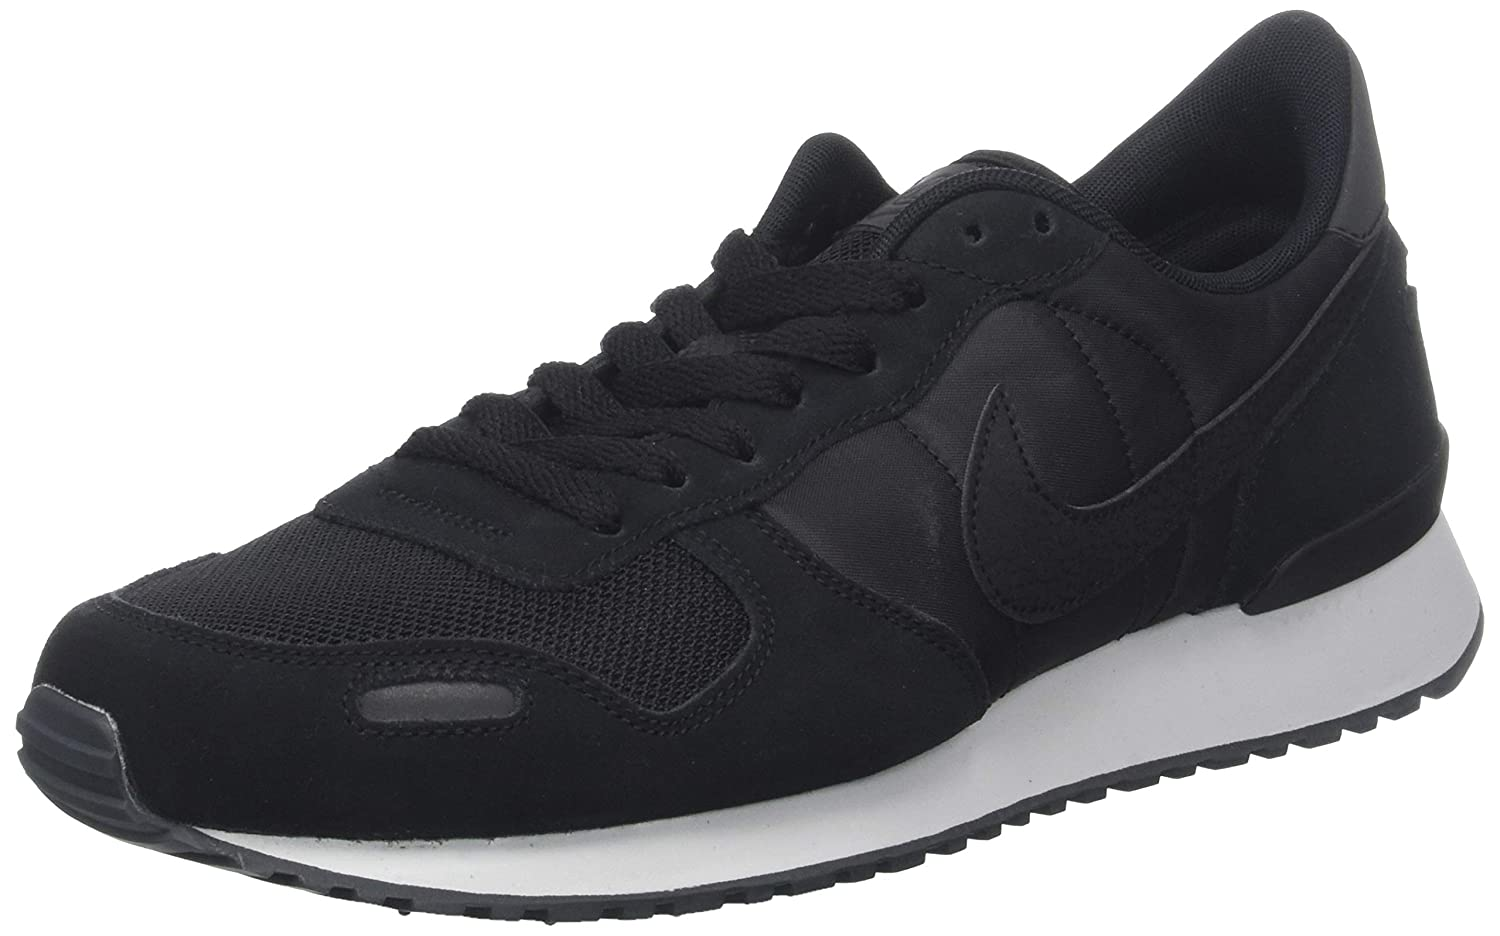 Nike Air Vortex Mens Running Trainers 903896 Sneakers Shoes (UK 9 US 10 EU 44, Black Pure Platinum 012)